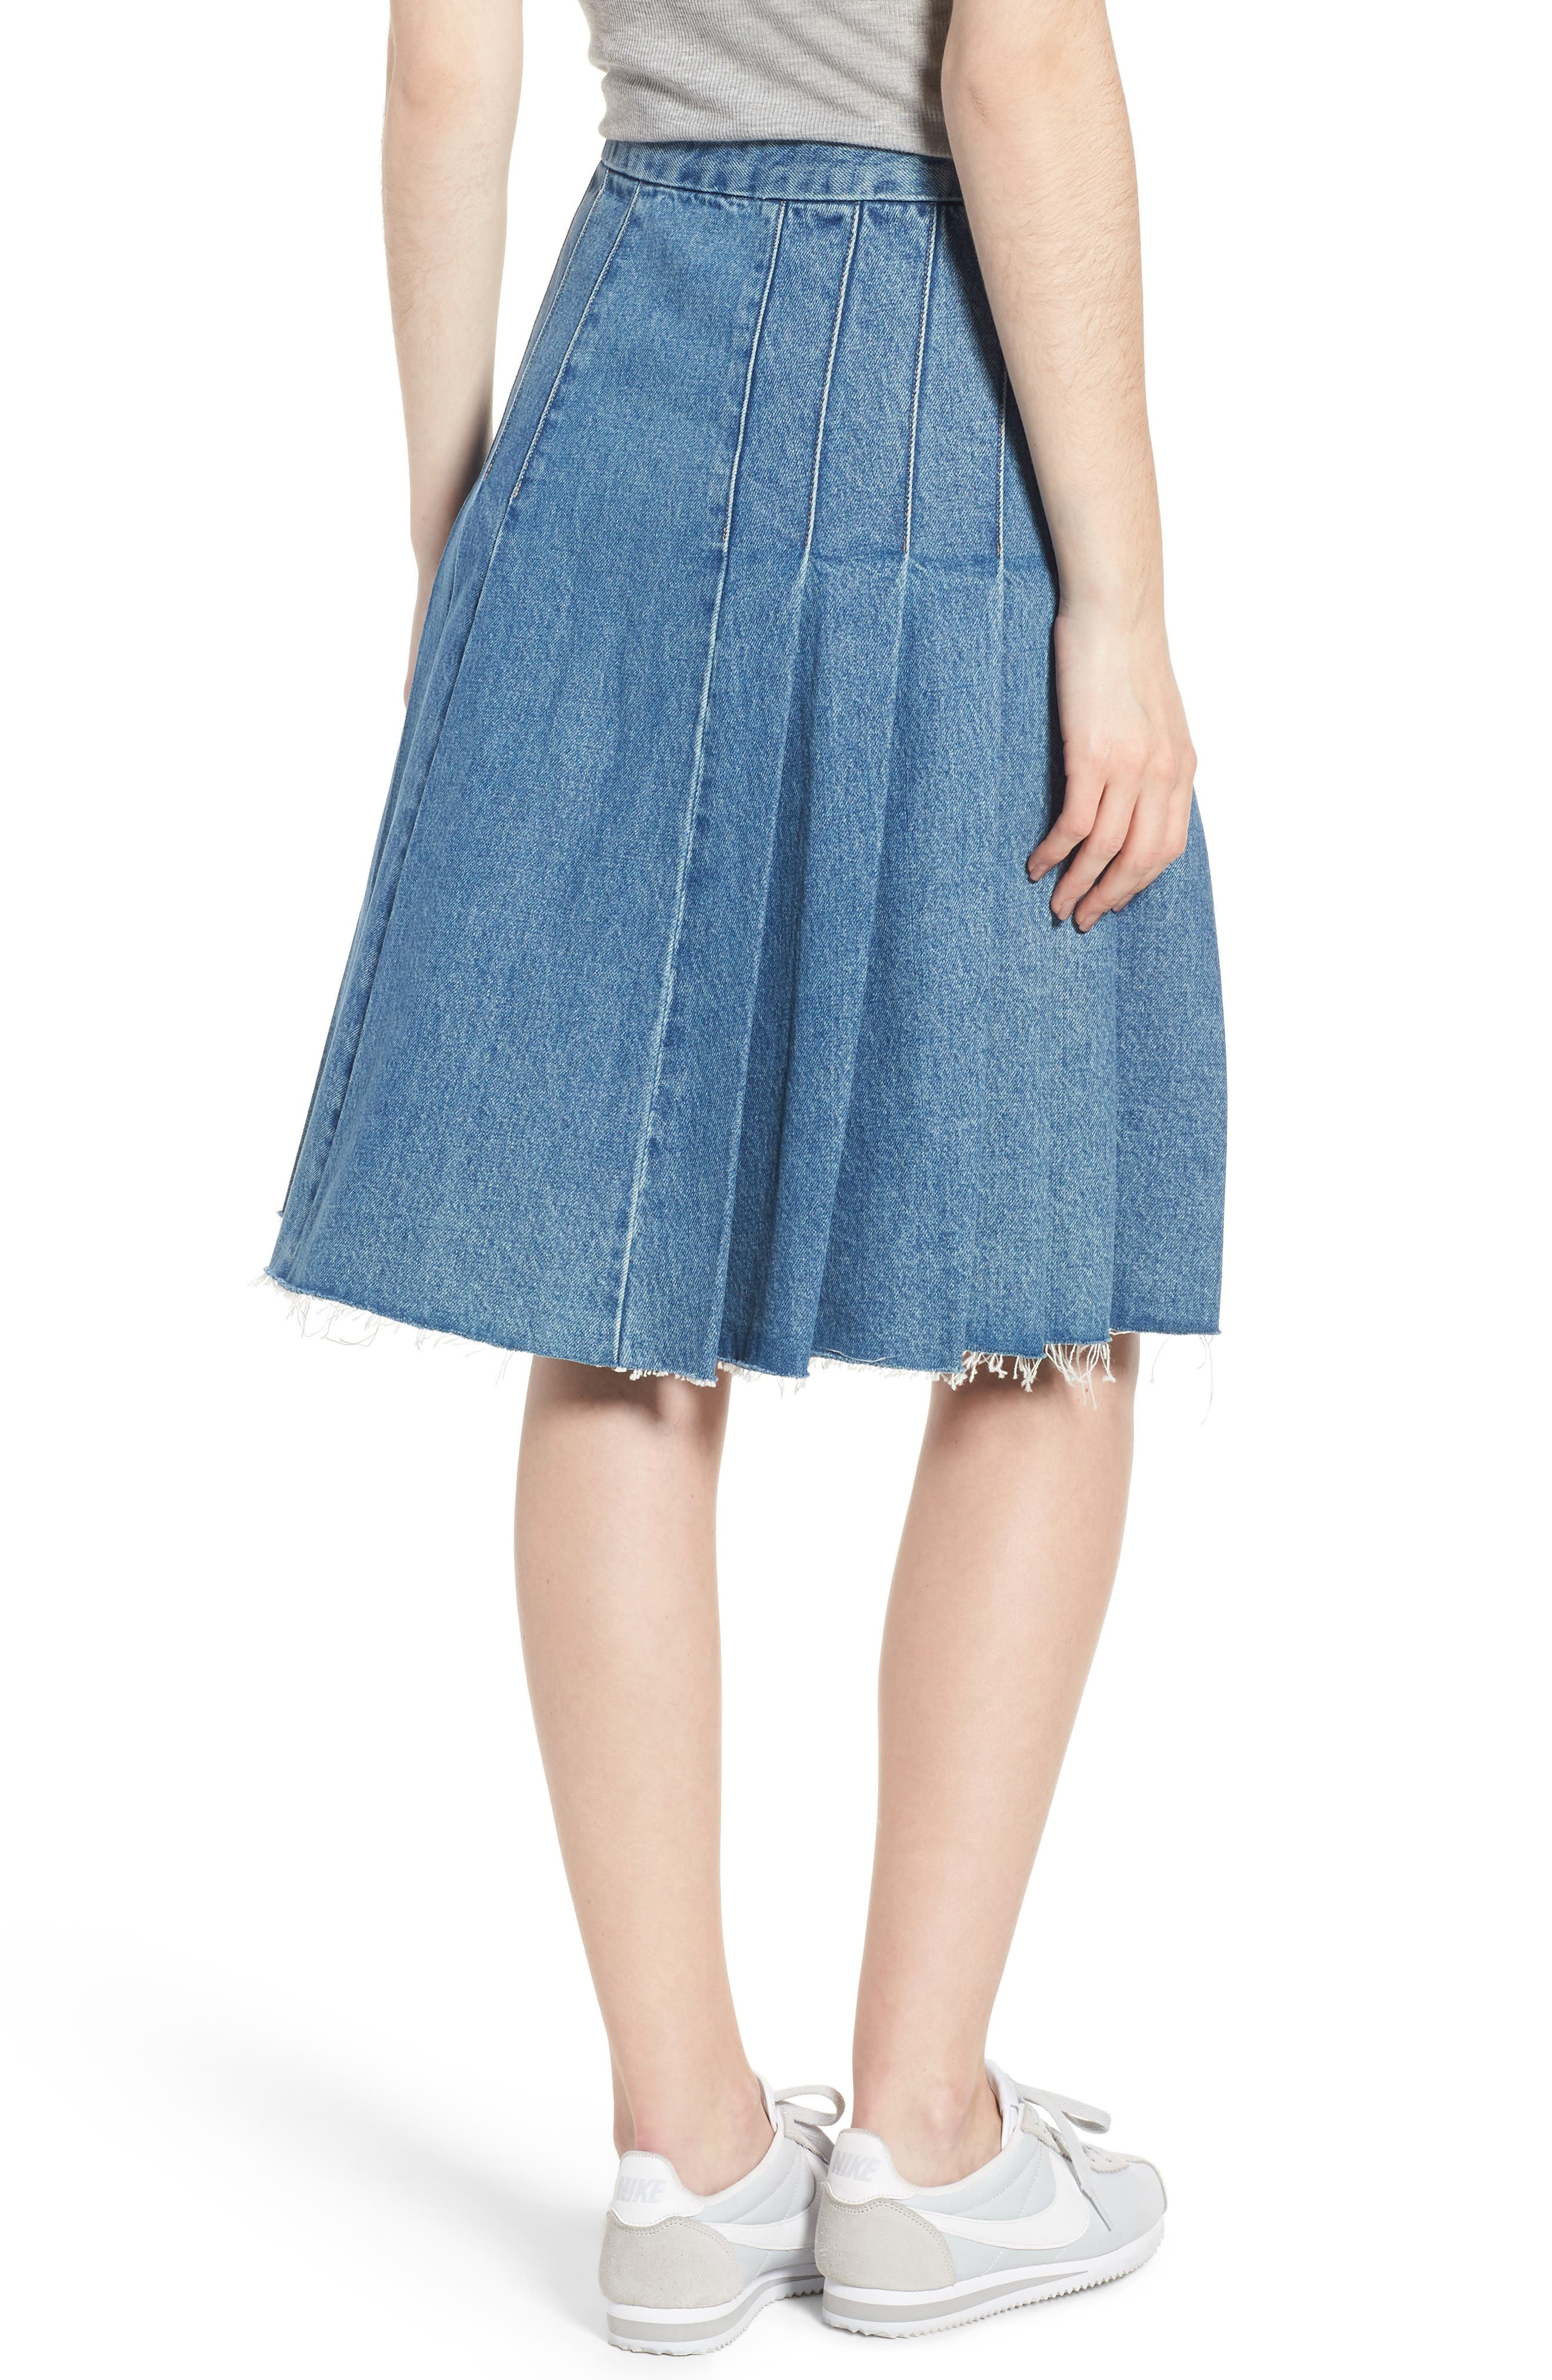 LEVI'S<SUP>®</SUP> MADE & CRAFTED<SUP>™</SUP>,                             Type III Pleated Denim Skirt,                             Alternate thumbnail 2, color,                             400